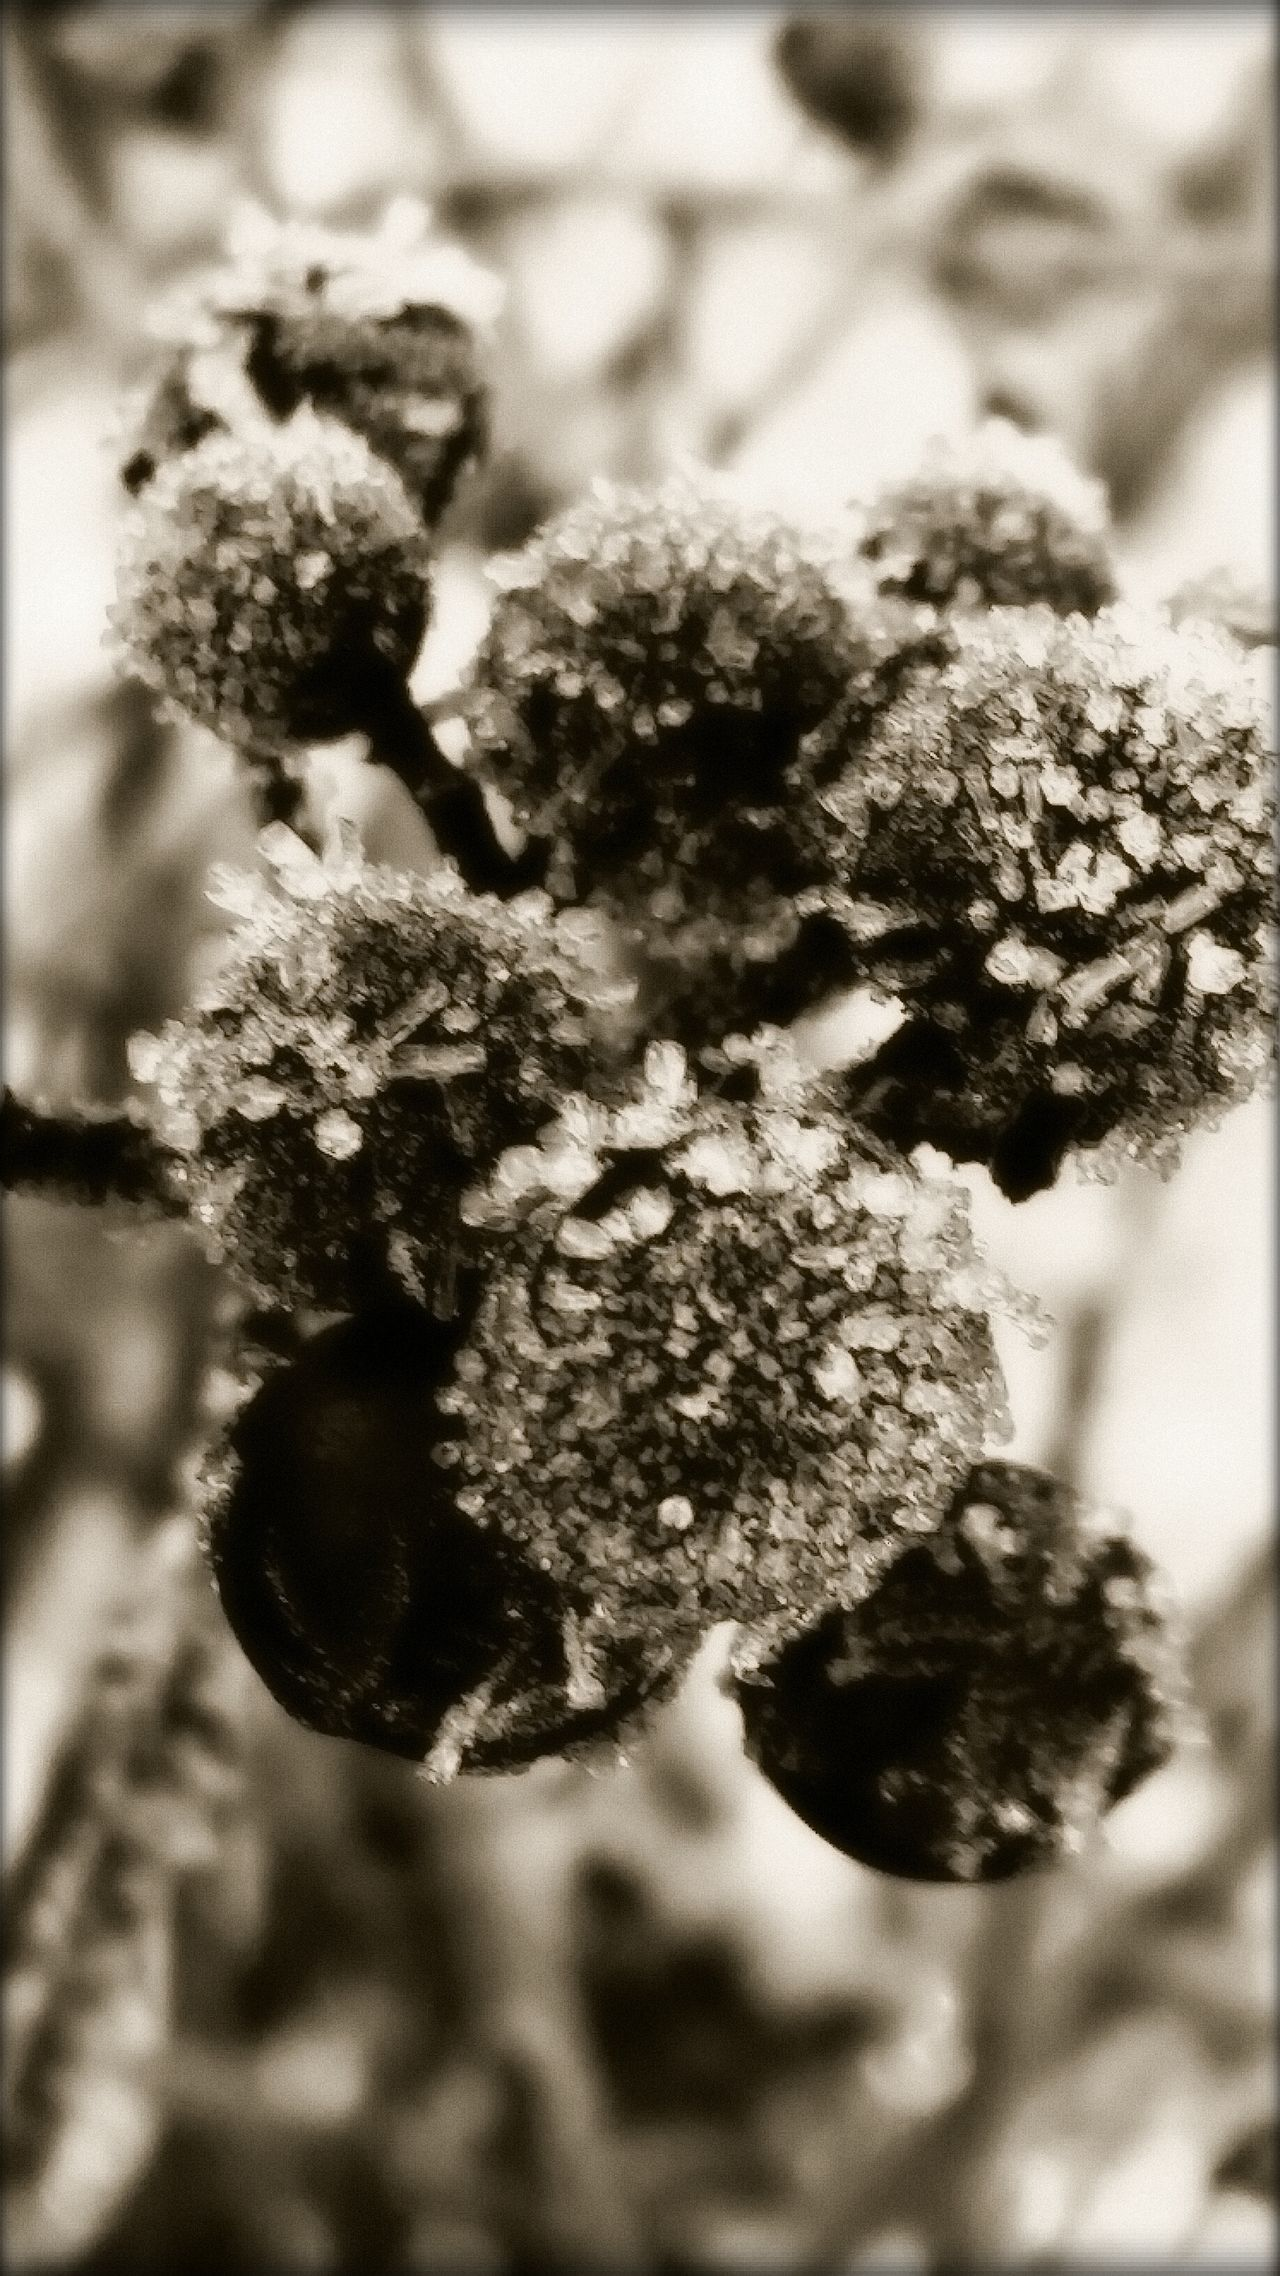 Berrys Frozen Winter Nature Black And White Photography Outdoor Photography No People